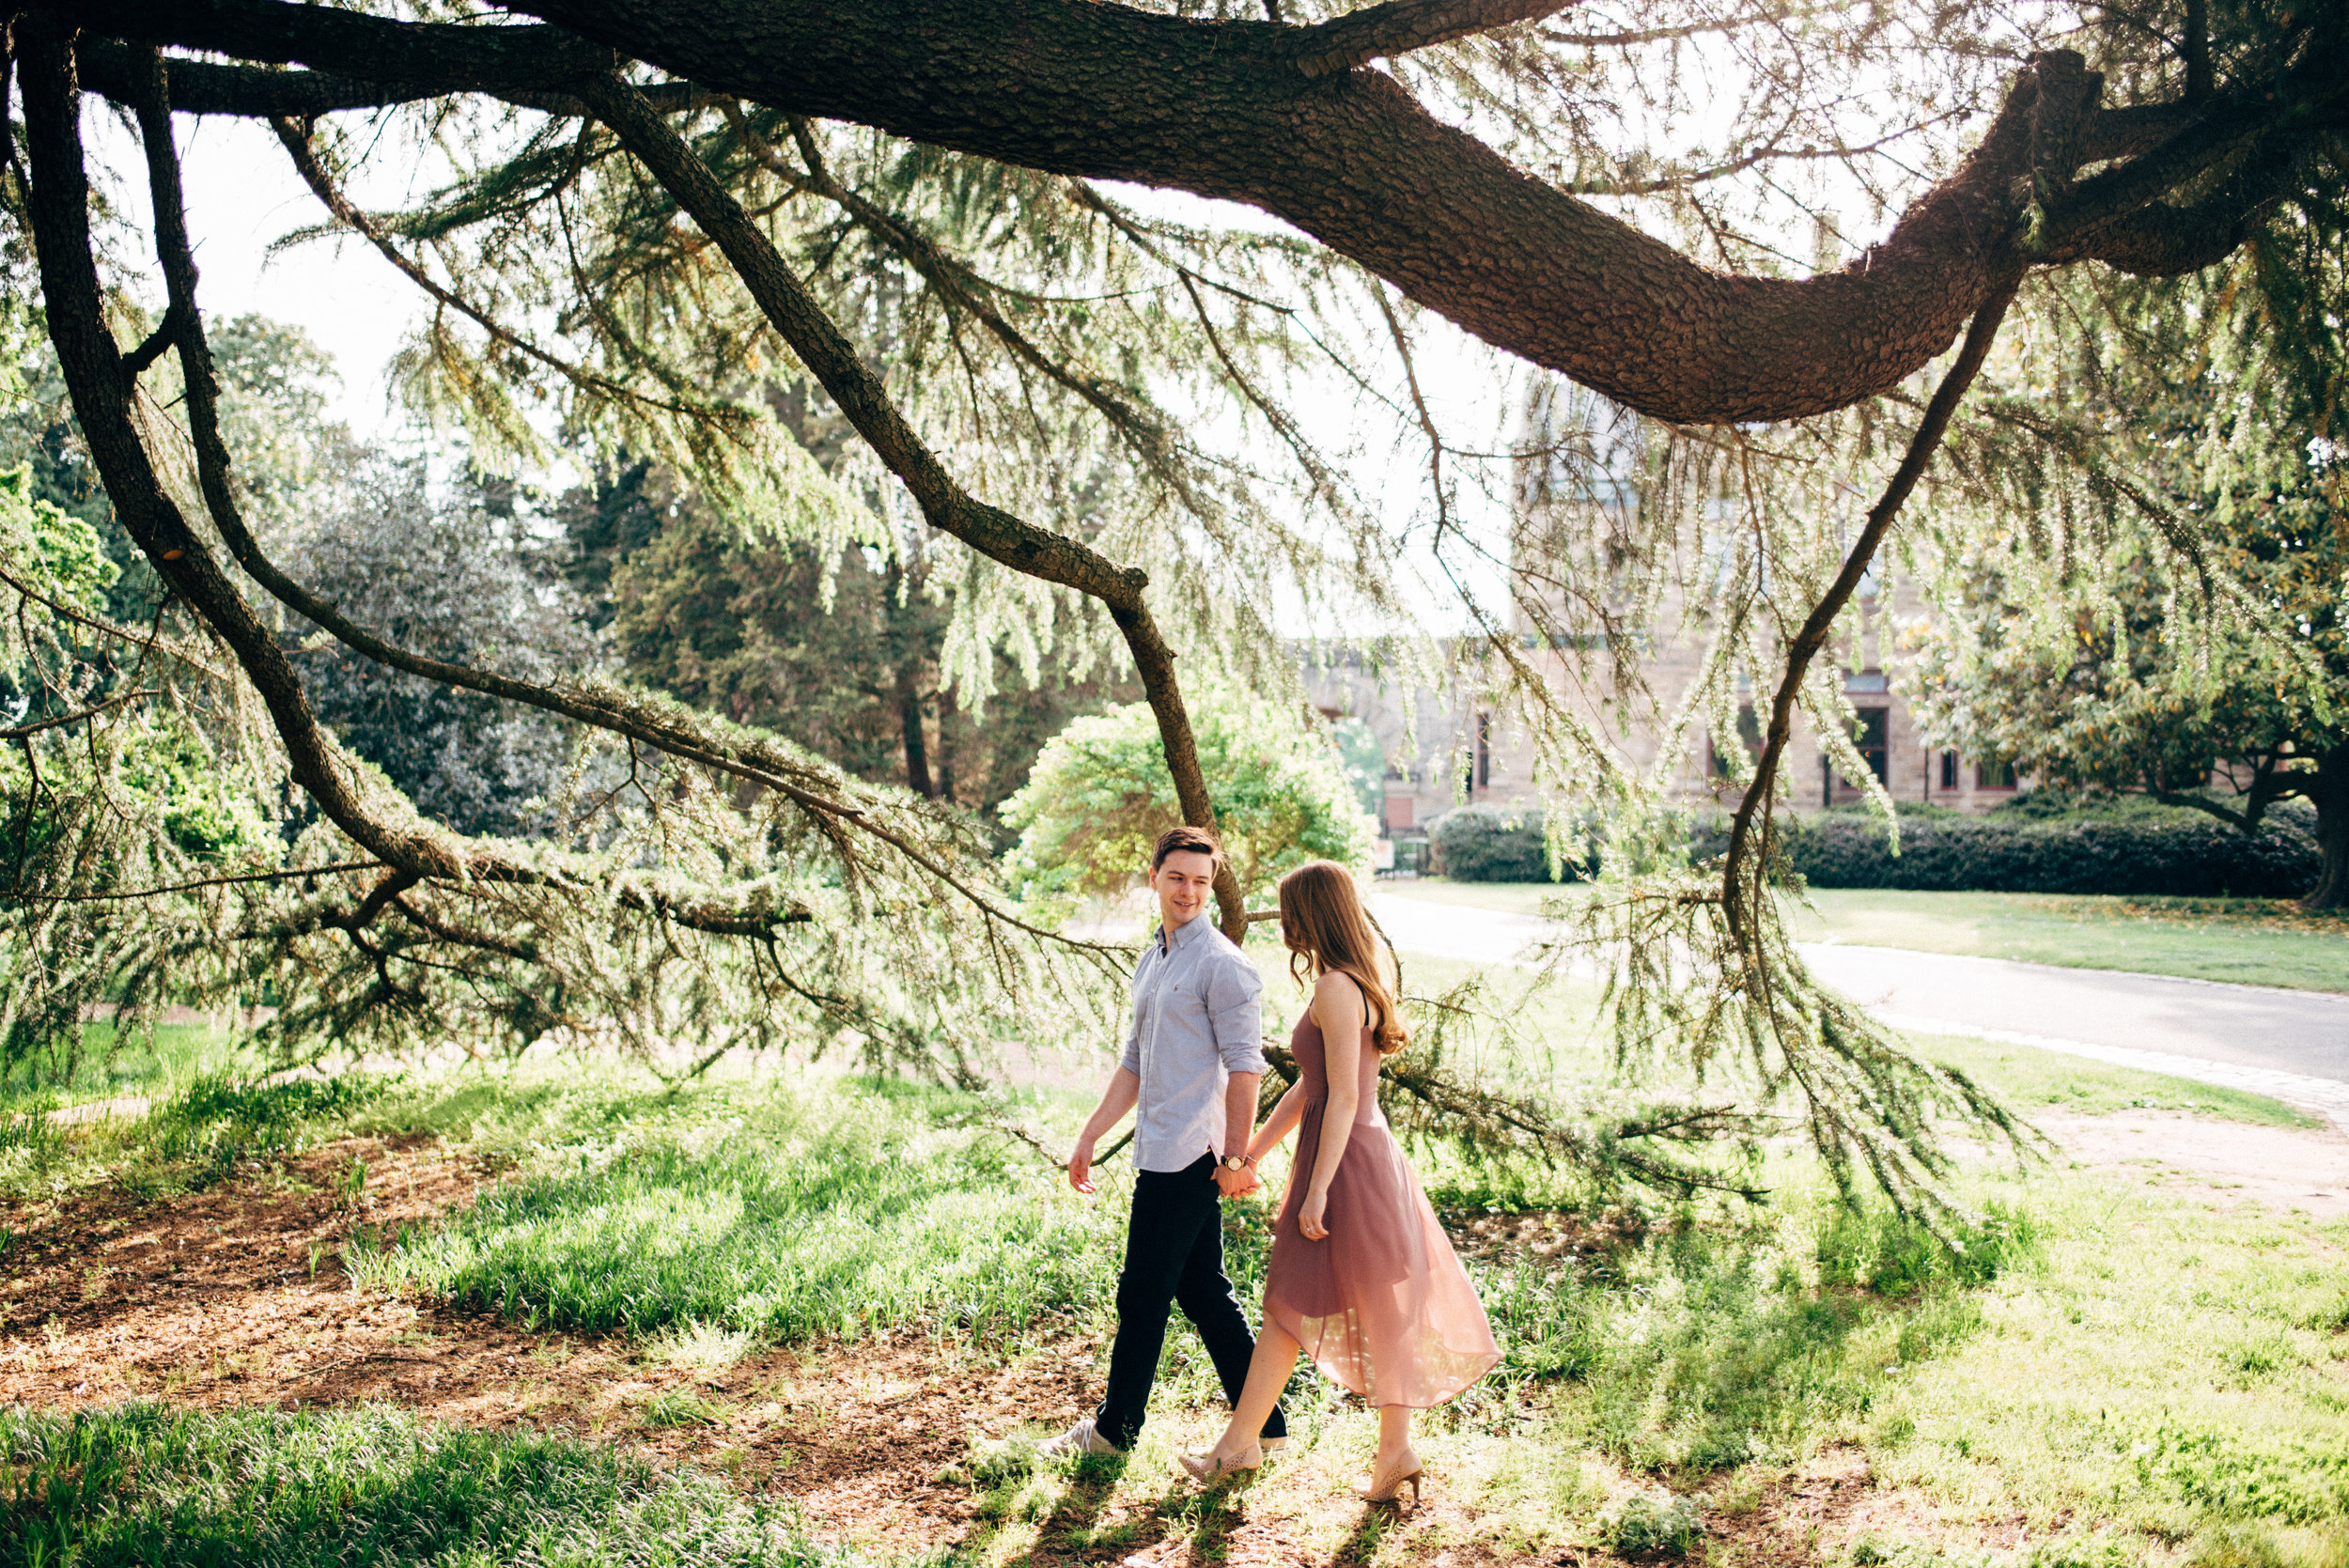 engagement-photographer-maymont-park-Richmond-Virginia-Lindsey-Paradiso-photography-1.jpg